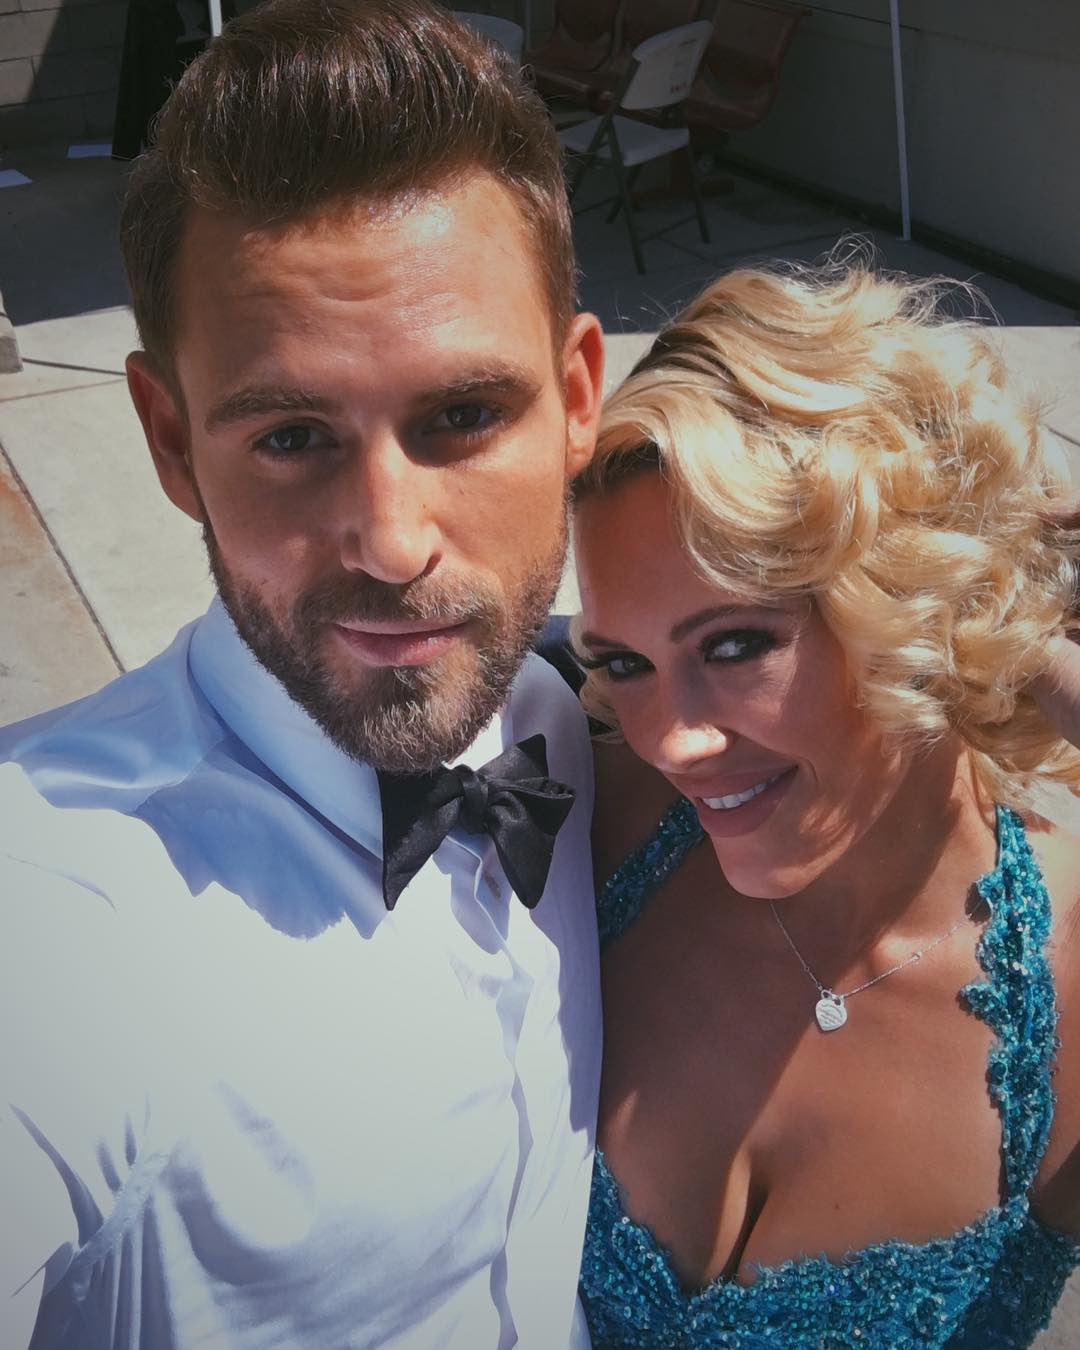 Nick Viall and Peta Murgatroyd